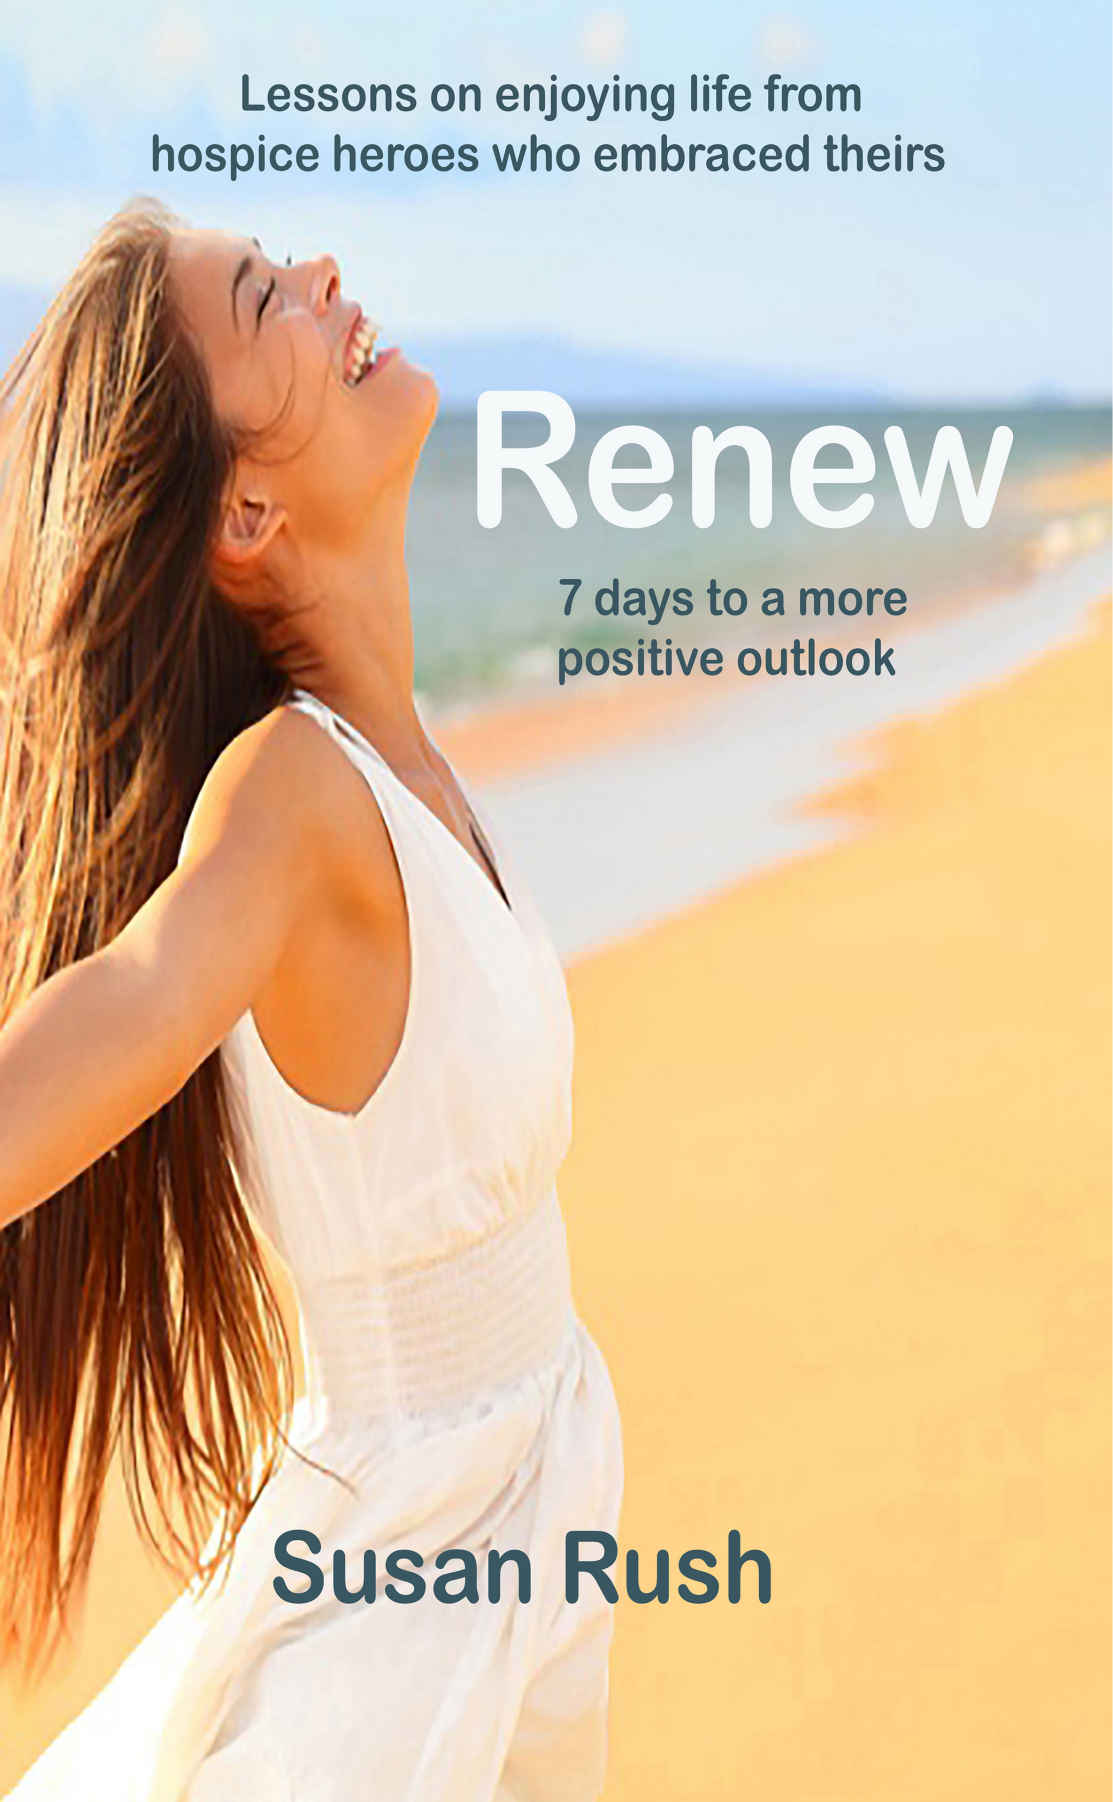 Renew: 7 days to a more positive outlook by Susan Rush